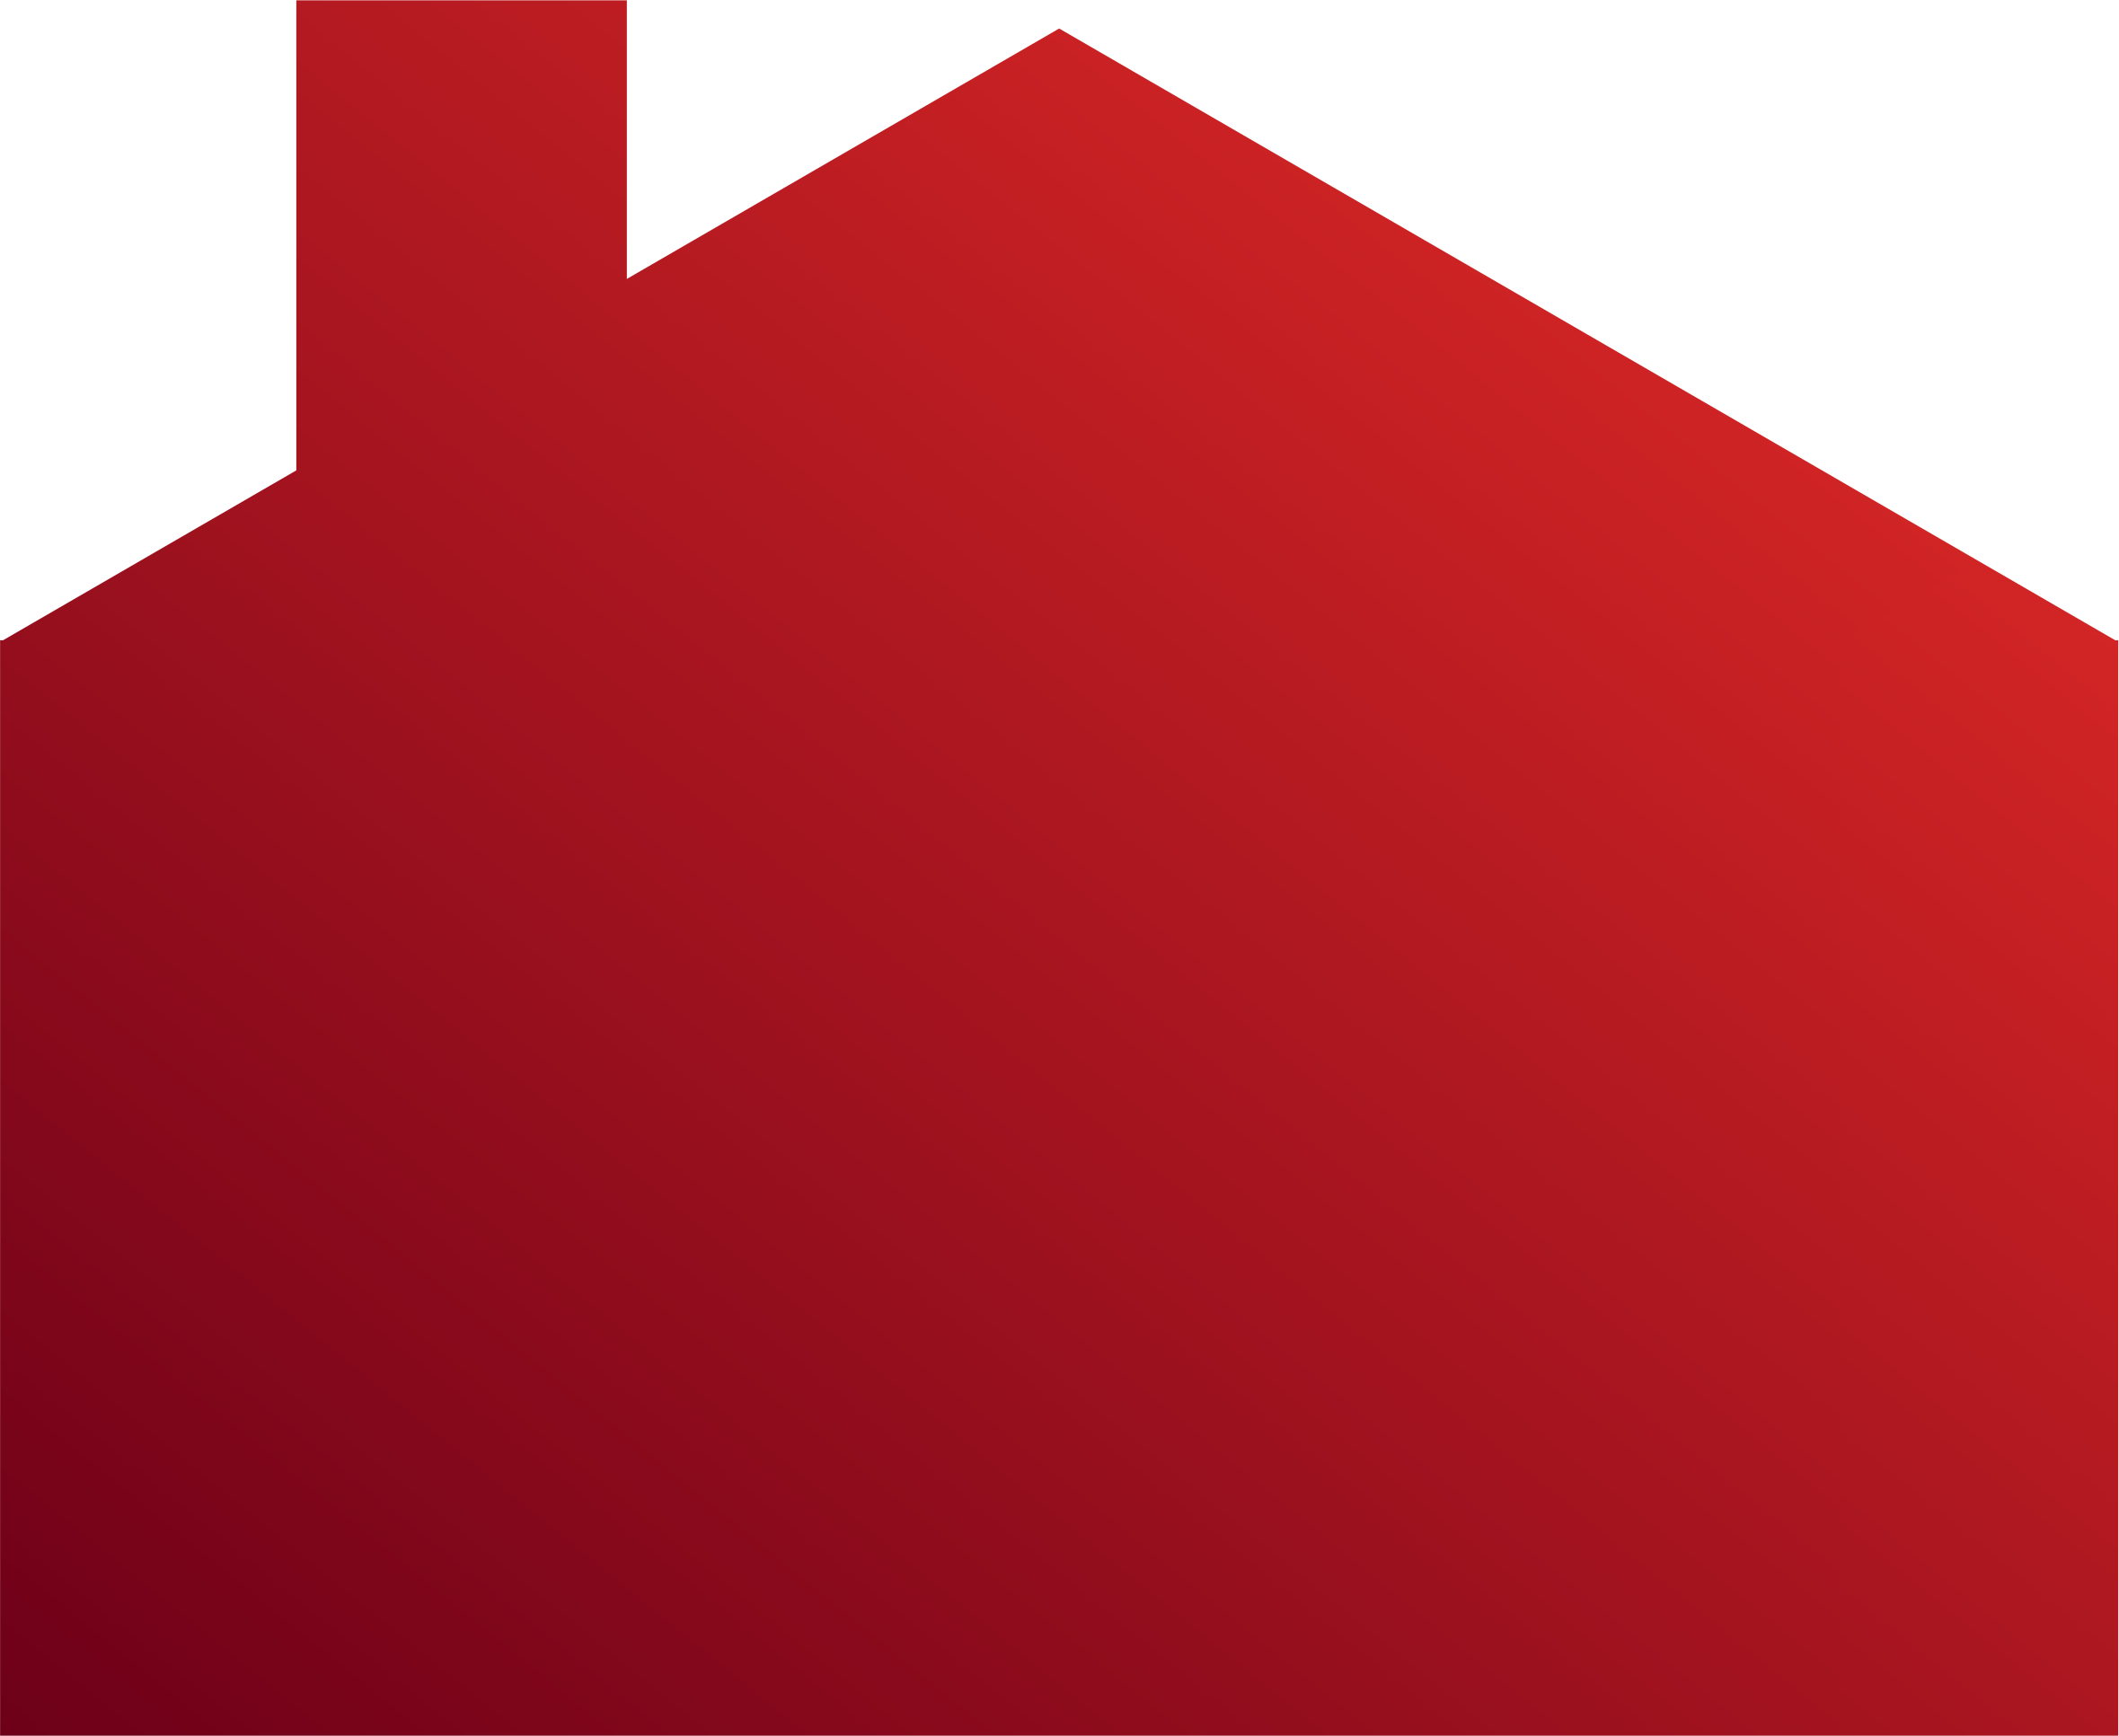 Red house clipart clip royalty free stock Clipart - red house clip royalty free stock